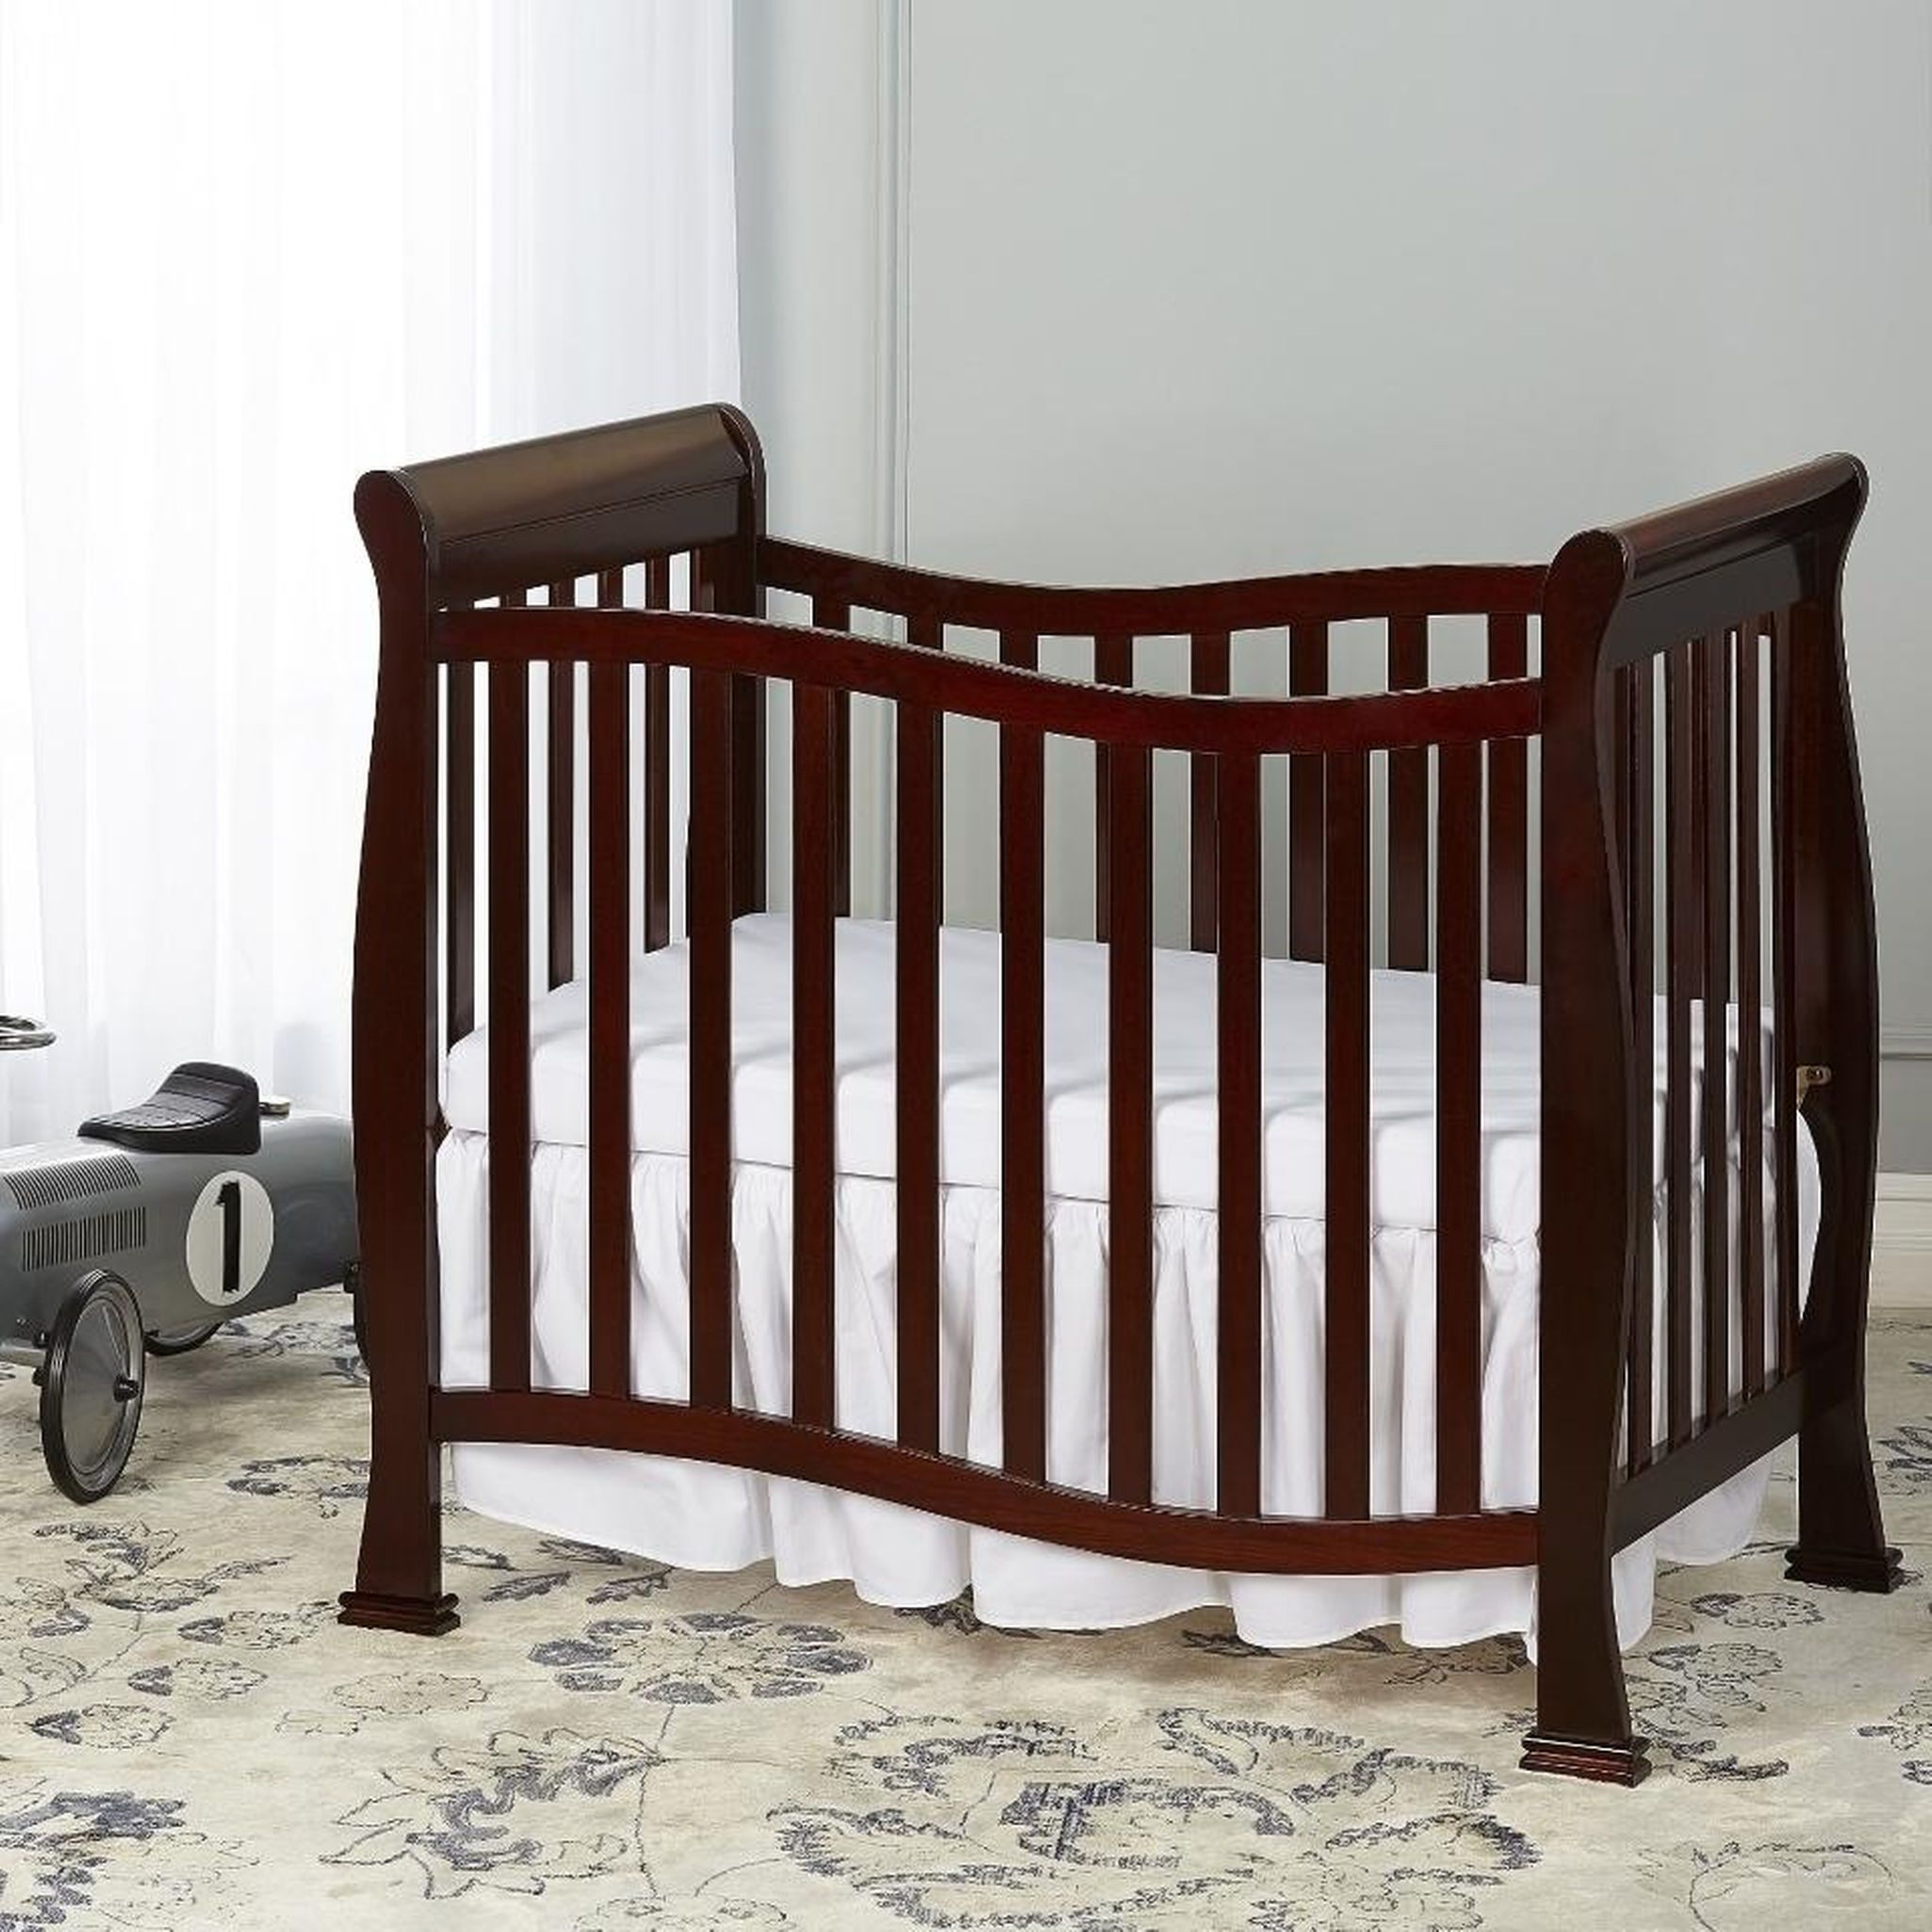 me diaper furniture changing ideas s dream constructed bed plus drawer white on convertible crib toddler impressive rugged a design multipurpose baby tables safety is fosterboyspizza cribs black babys and first dresser